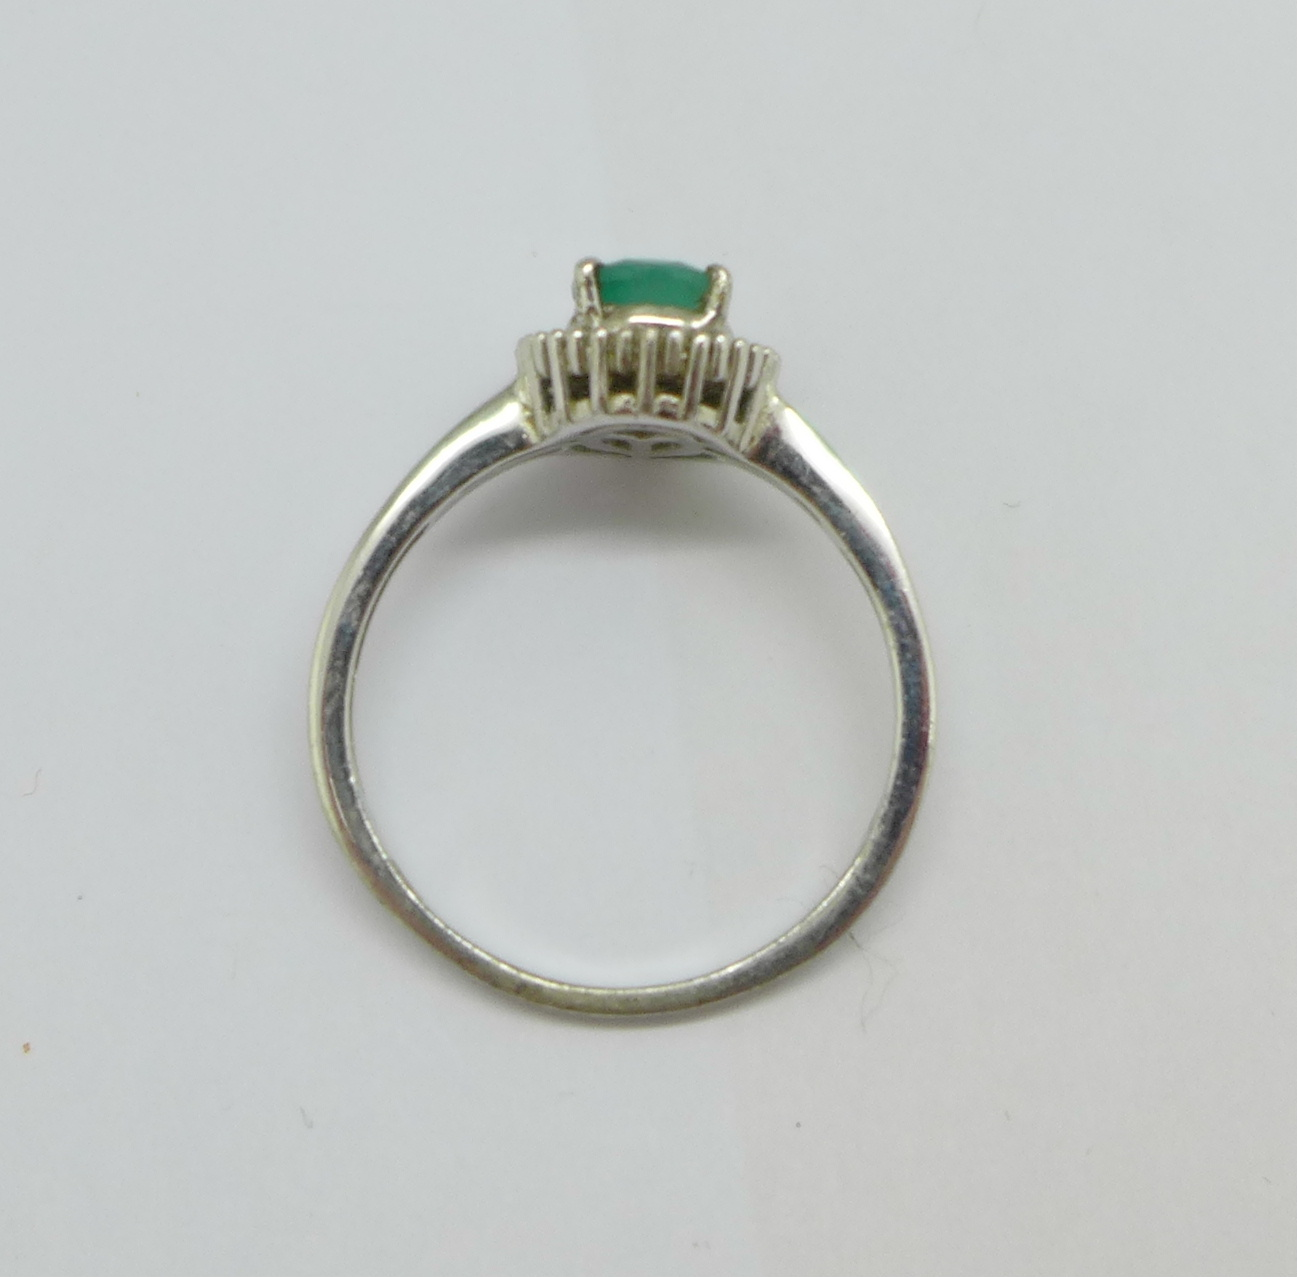 A silver, emerald and diamond set ring, T/U - Image 3 of 3